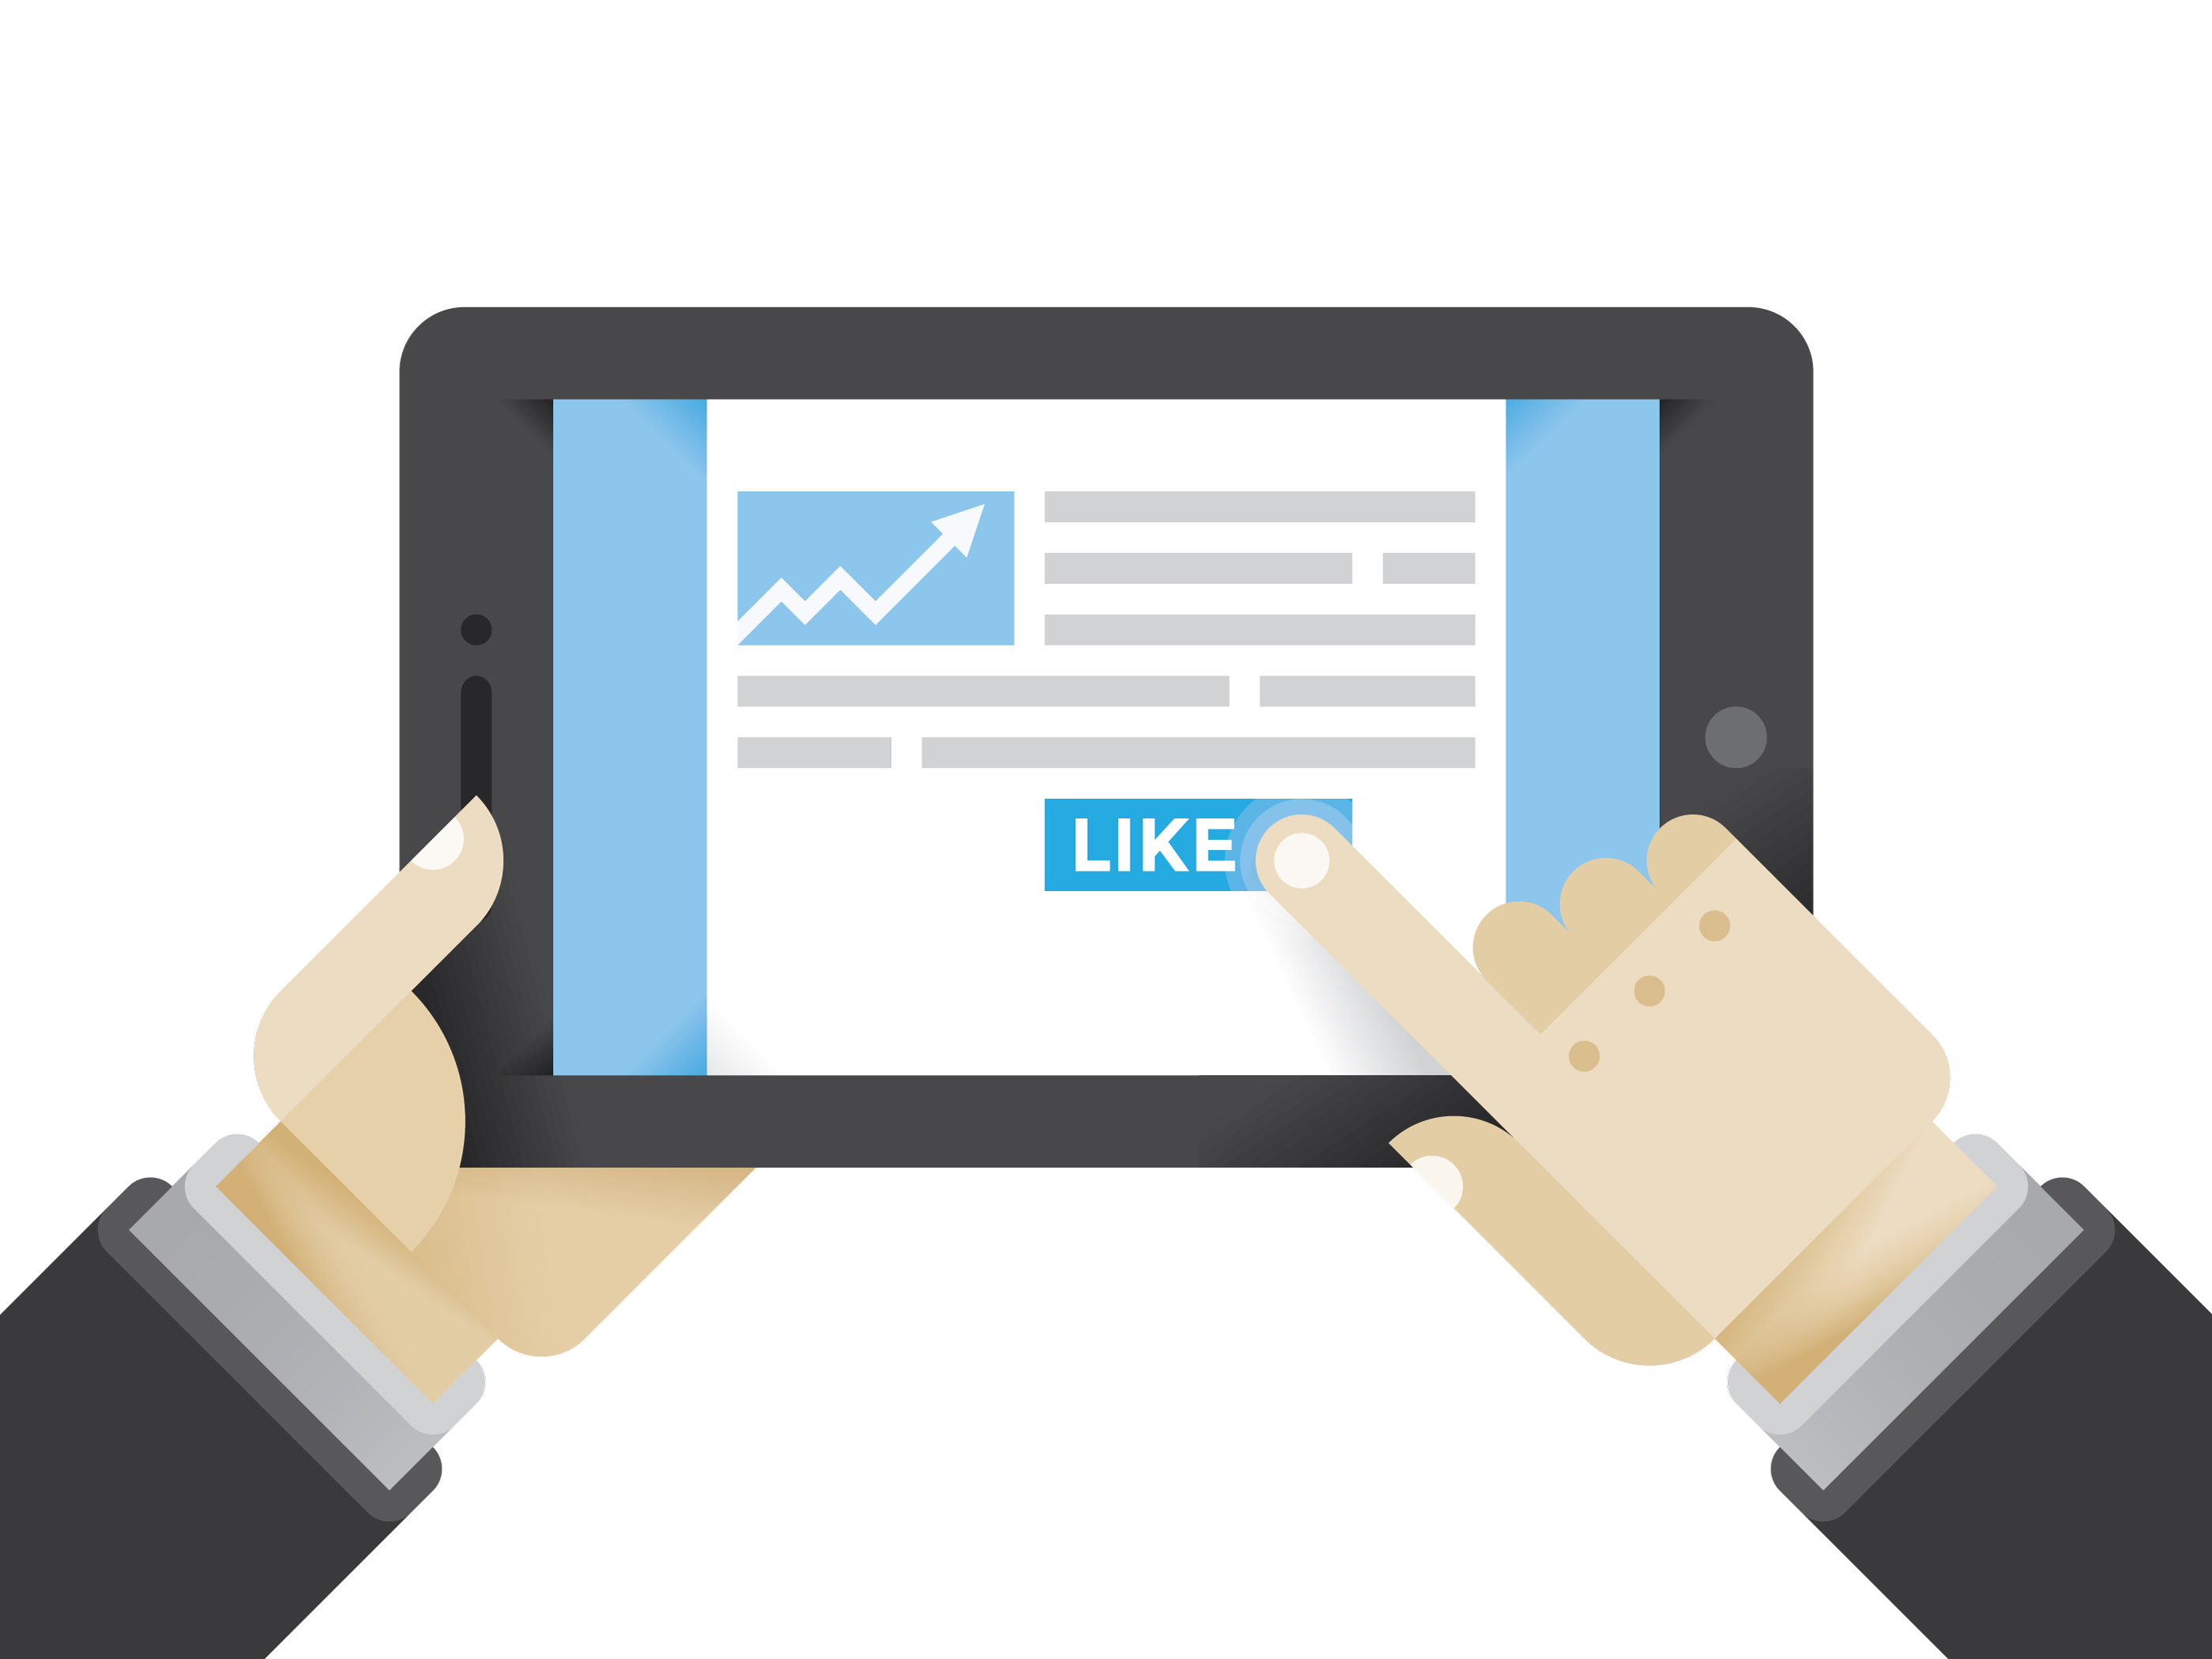 Facebook Updates News Feed - 'Instant Articles' to Gain More Reach | Social Media Today